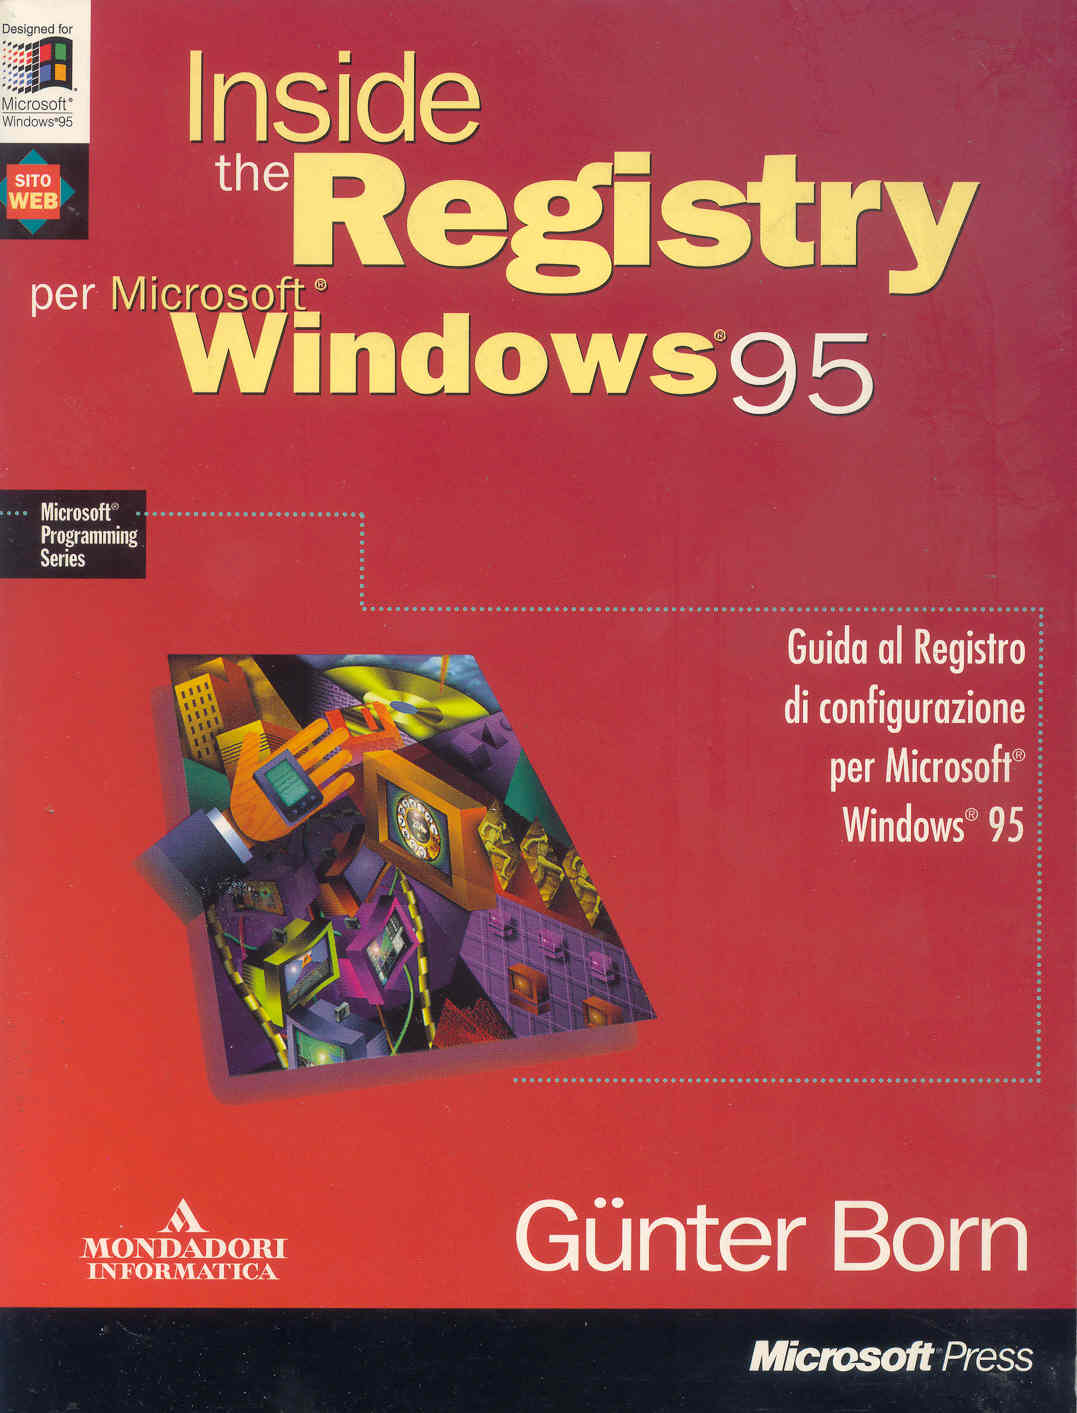 Inside the registry per Microsoft Windows 95